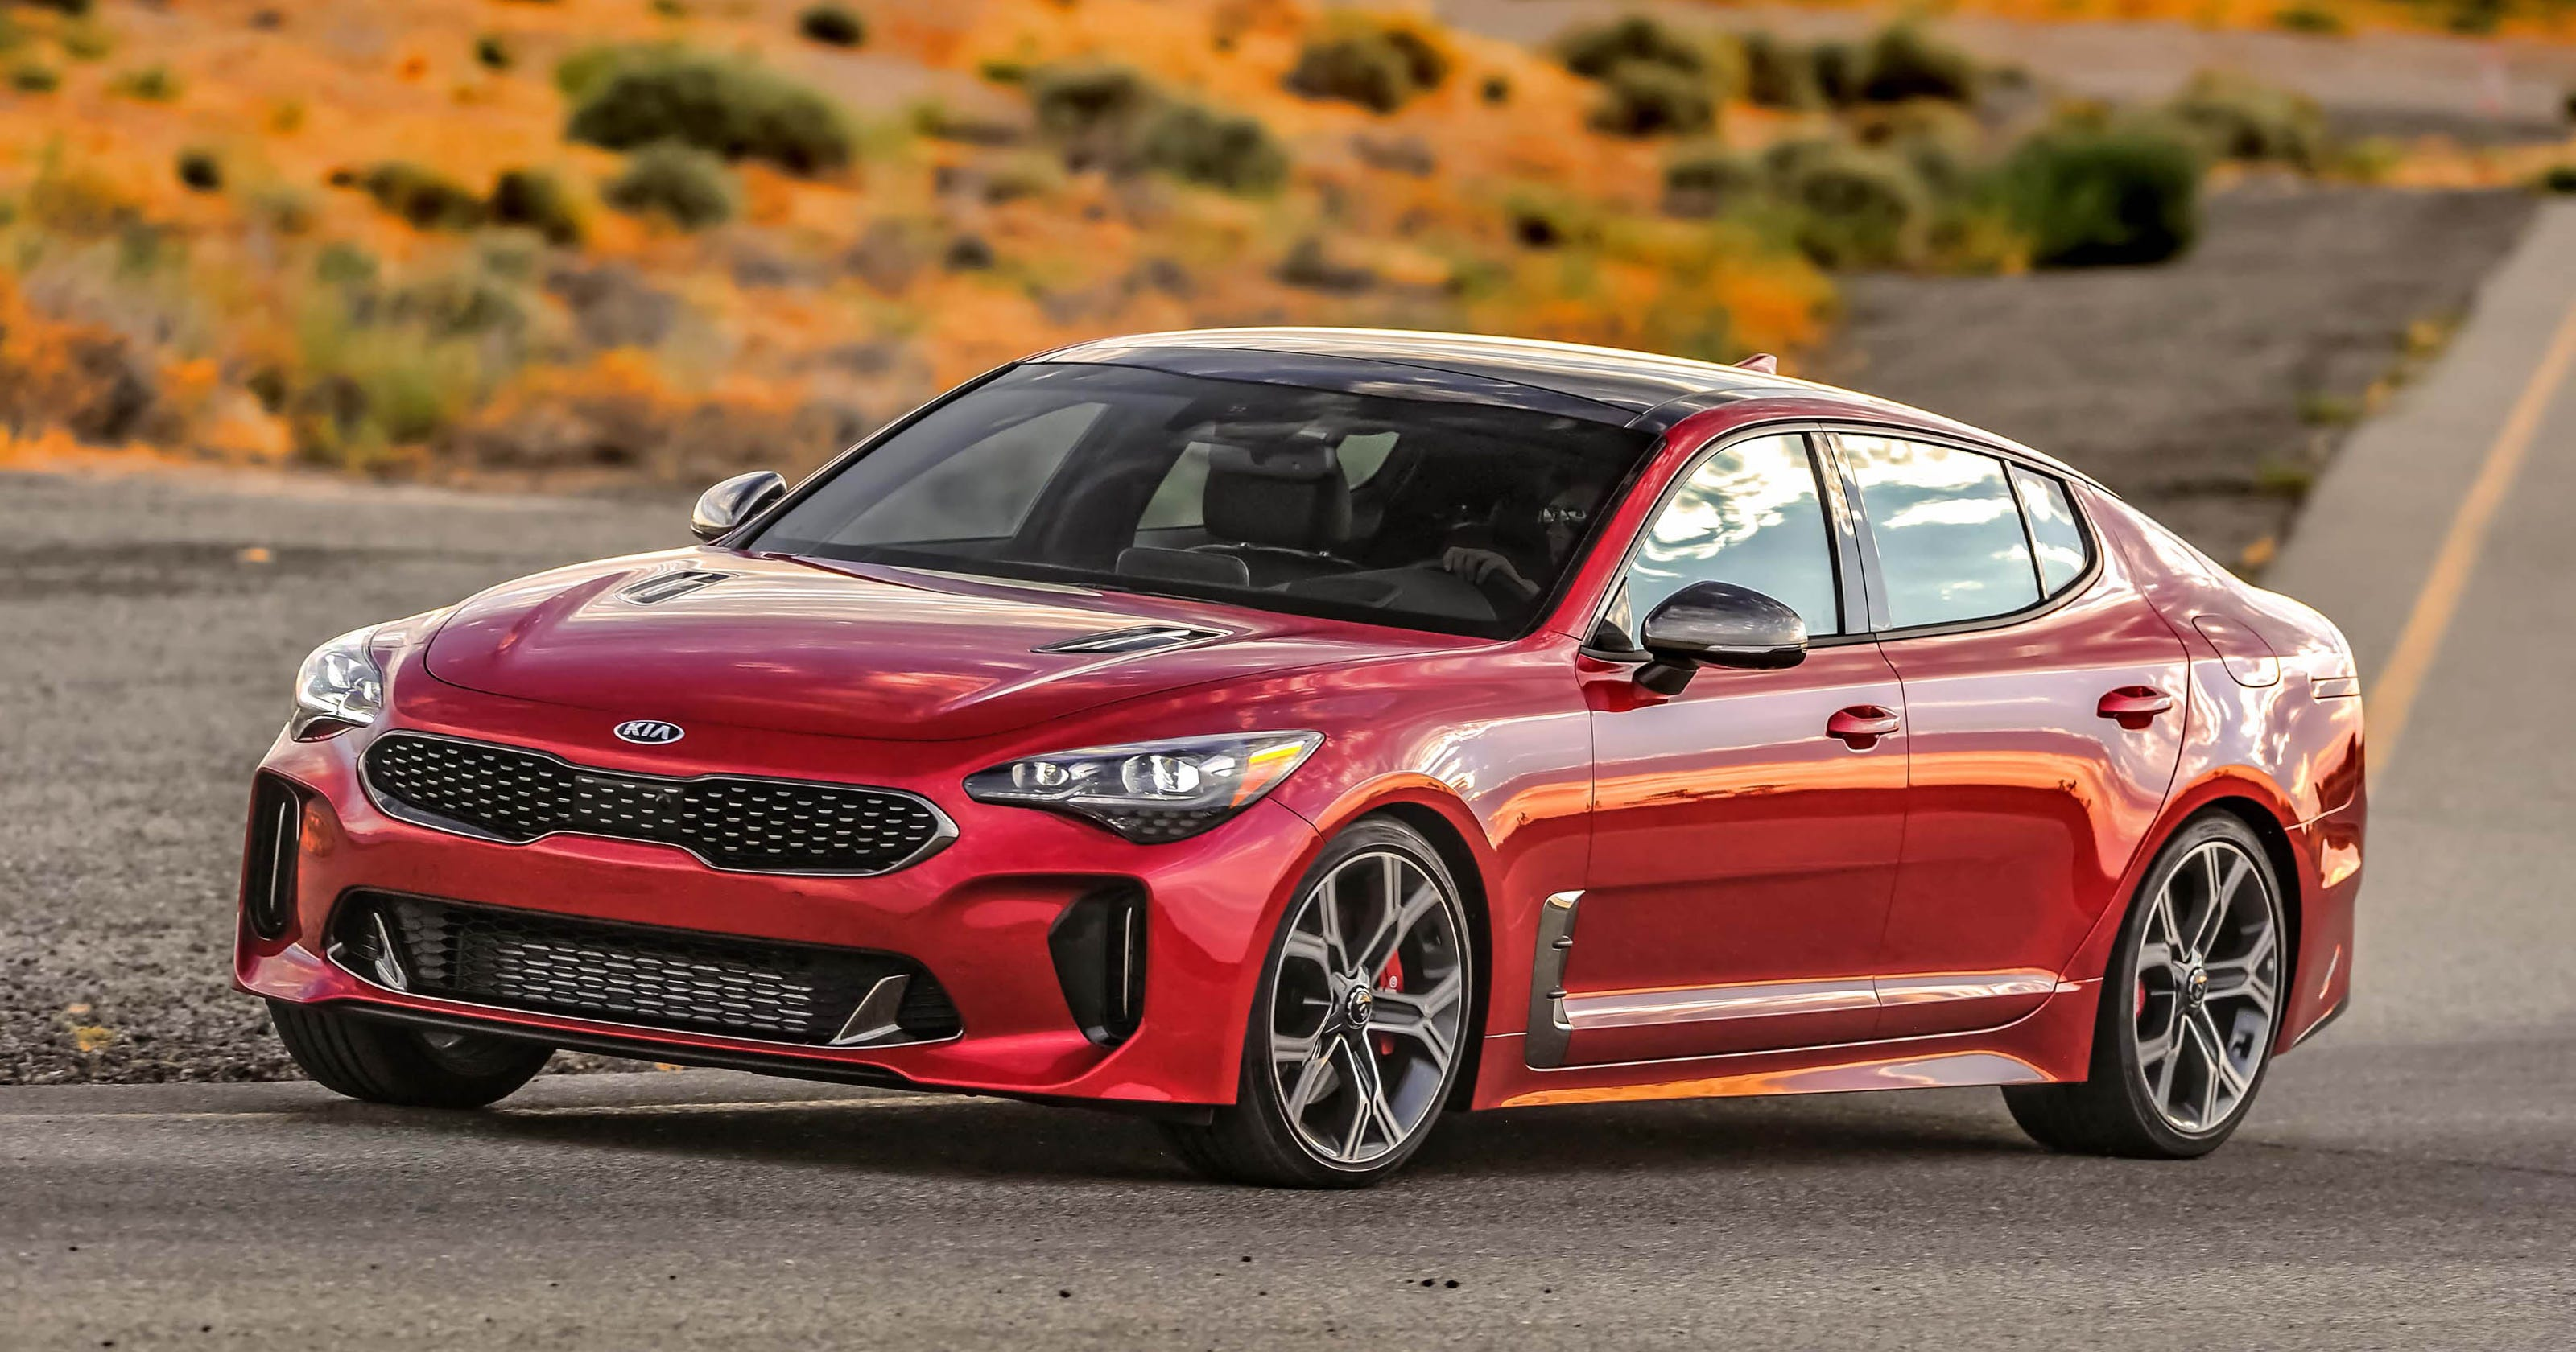 Car Review 2018 Kia Stinger Takes The Brand To A Whole New Level